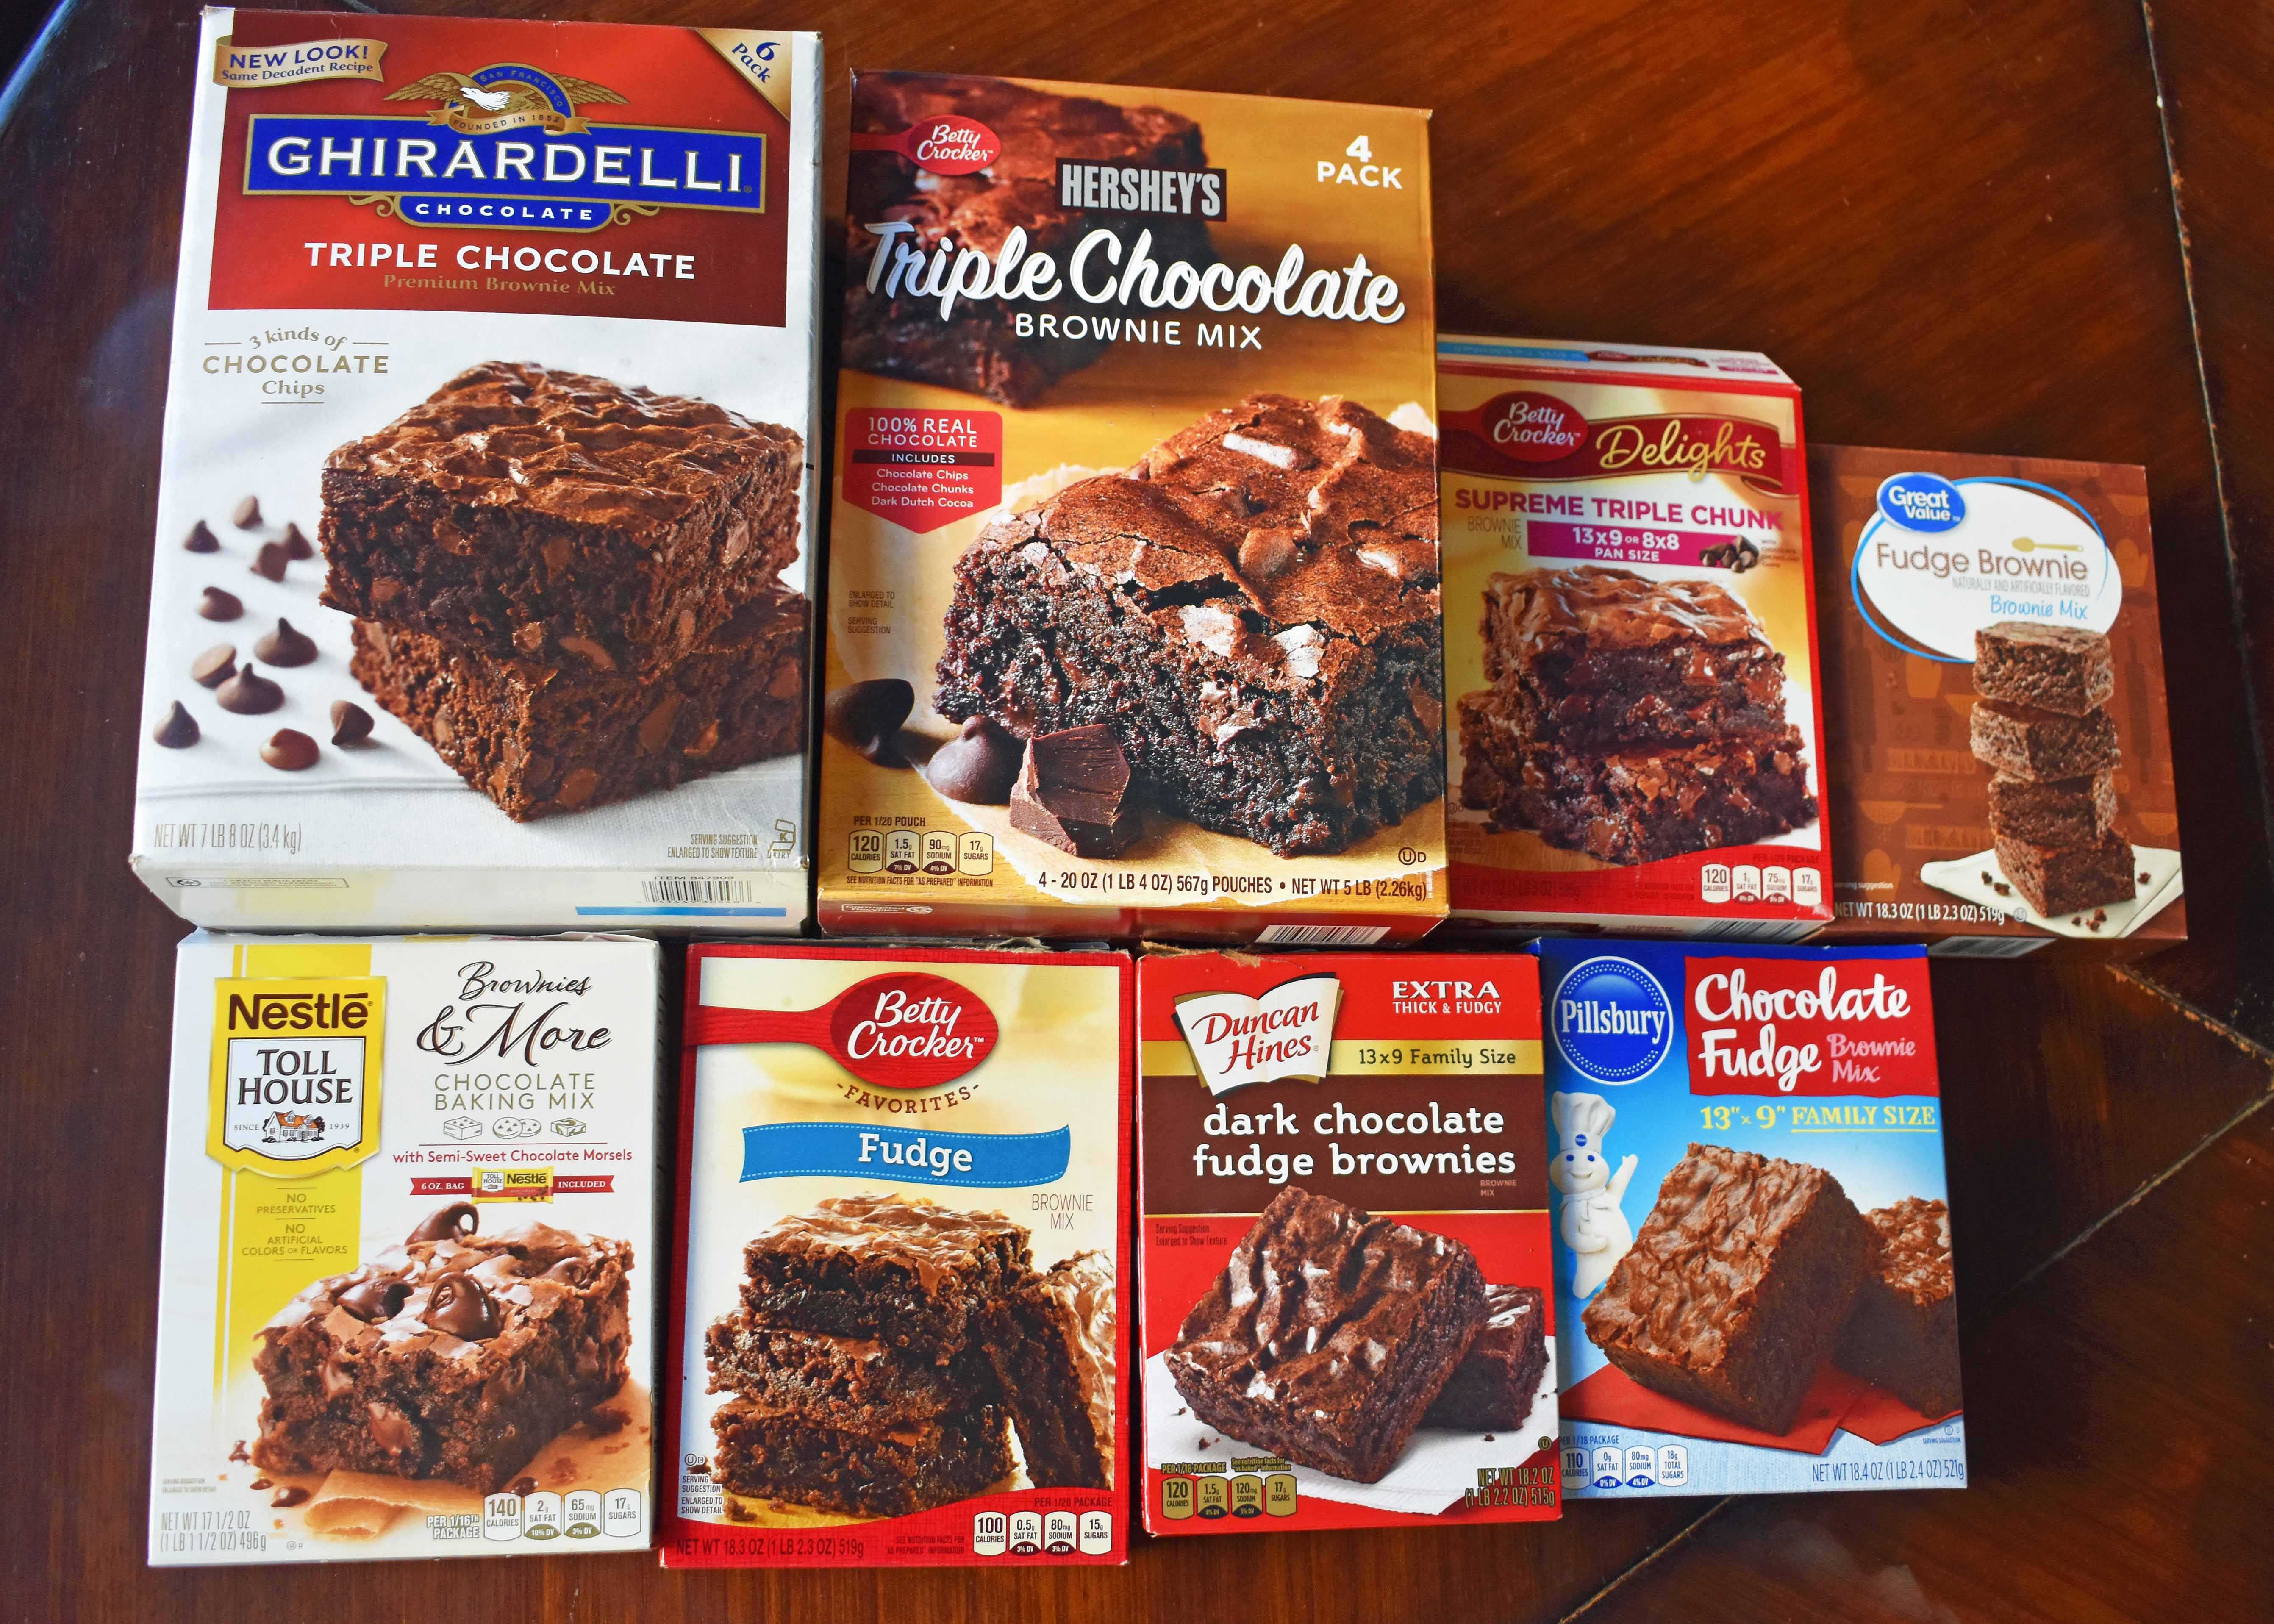 The BEST Brownie Taste Test. Reviews of the best boxed brownies in the grocery store. How to find the most popular brownie mixes. The ultimate boxed brownie mix taste test. Find out which chocolate brownie mix was the taste test winner! www.modernhoney.com